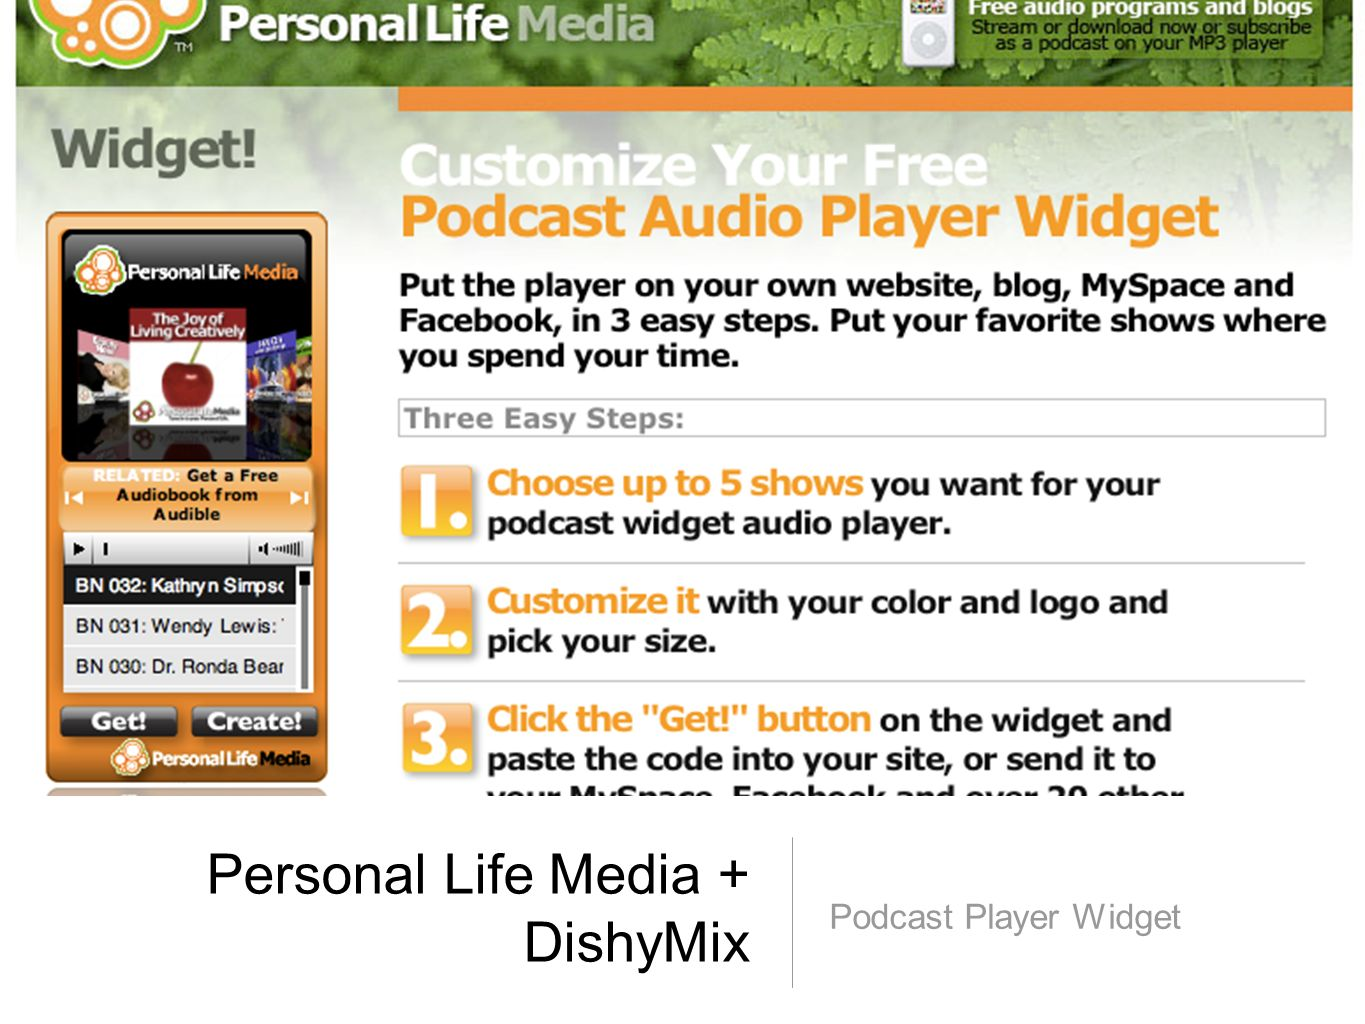 Personal Life Media + DishyMix Podcast Player Widget